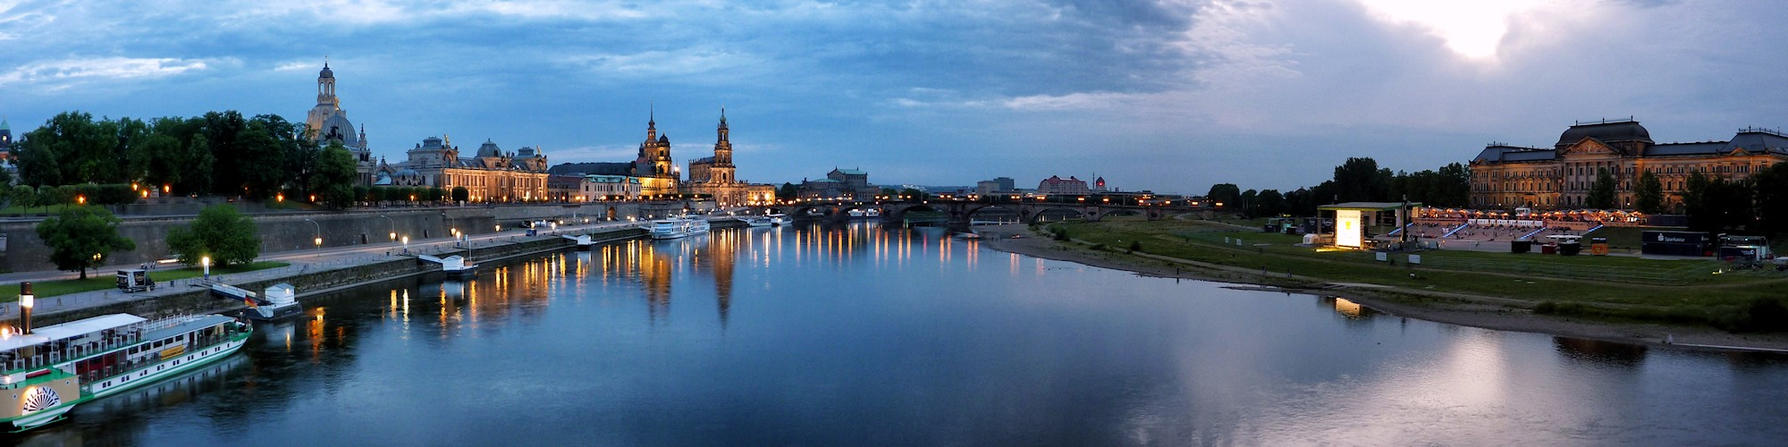 Dresden Panorama at Night by cheyrek